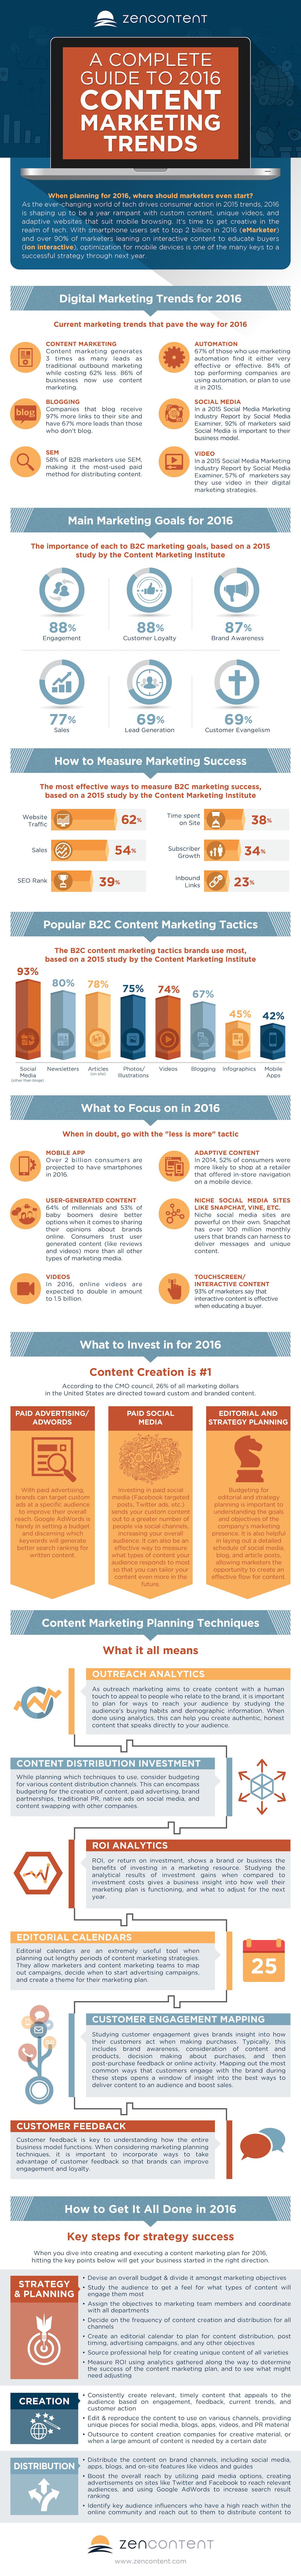 PRFINAL-A-Complete-Guide-to-2016-Content-Marketing-Trends-page-0011.jpg